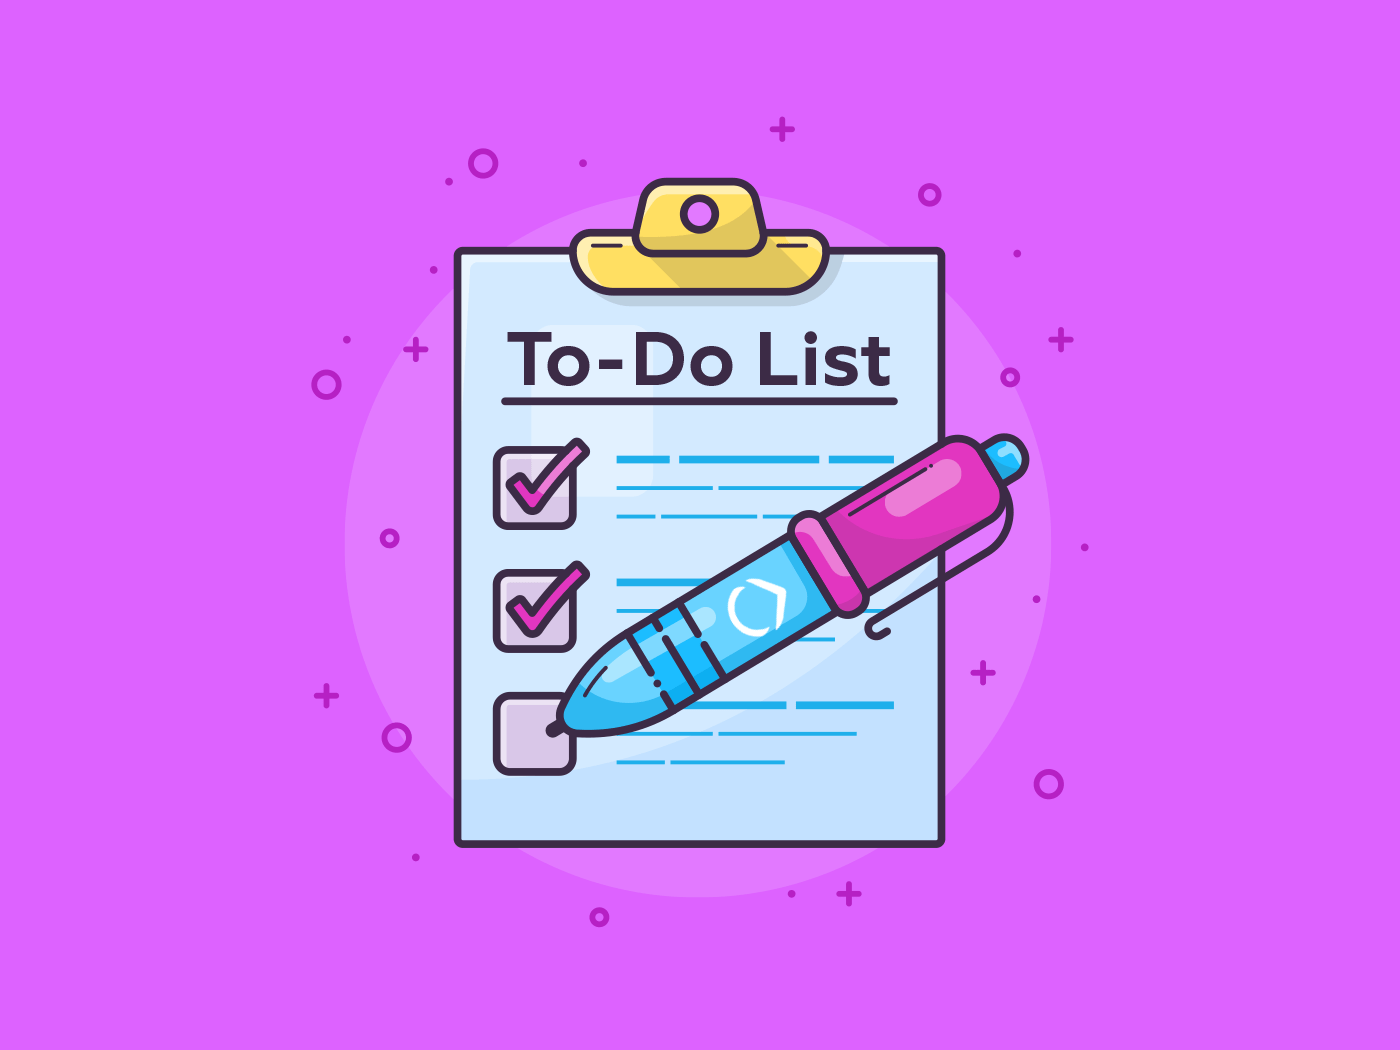 todo list android tutorial